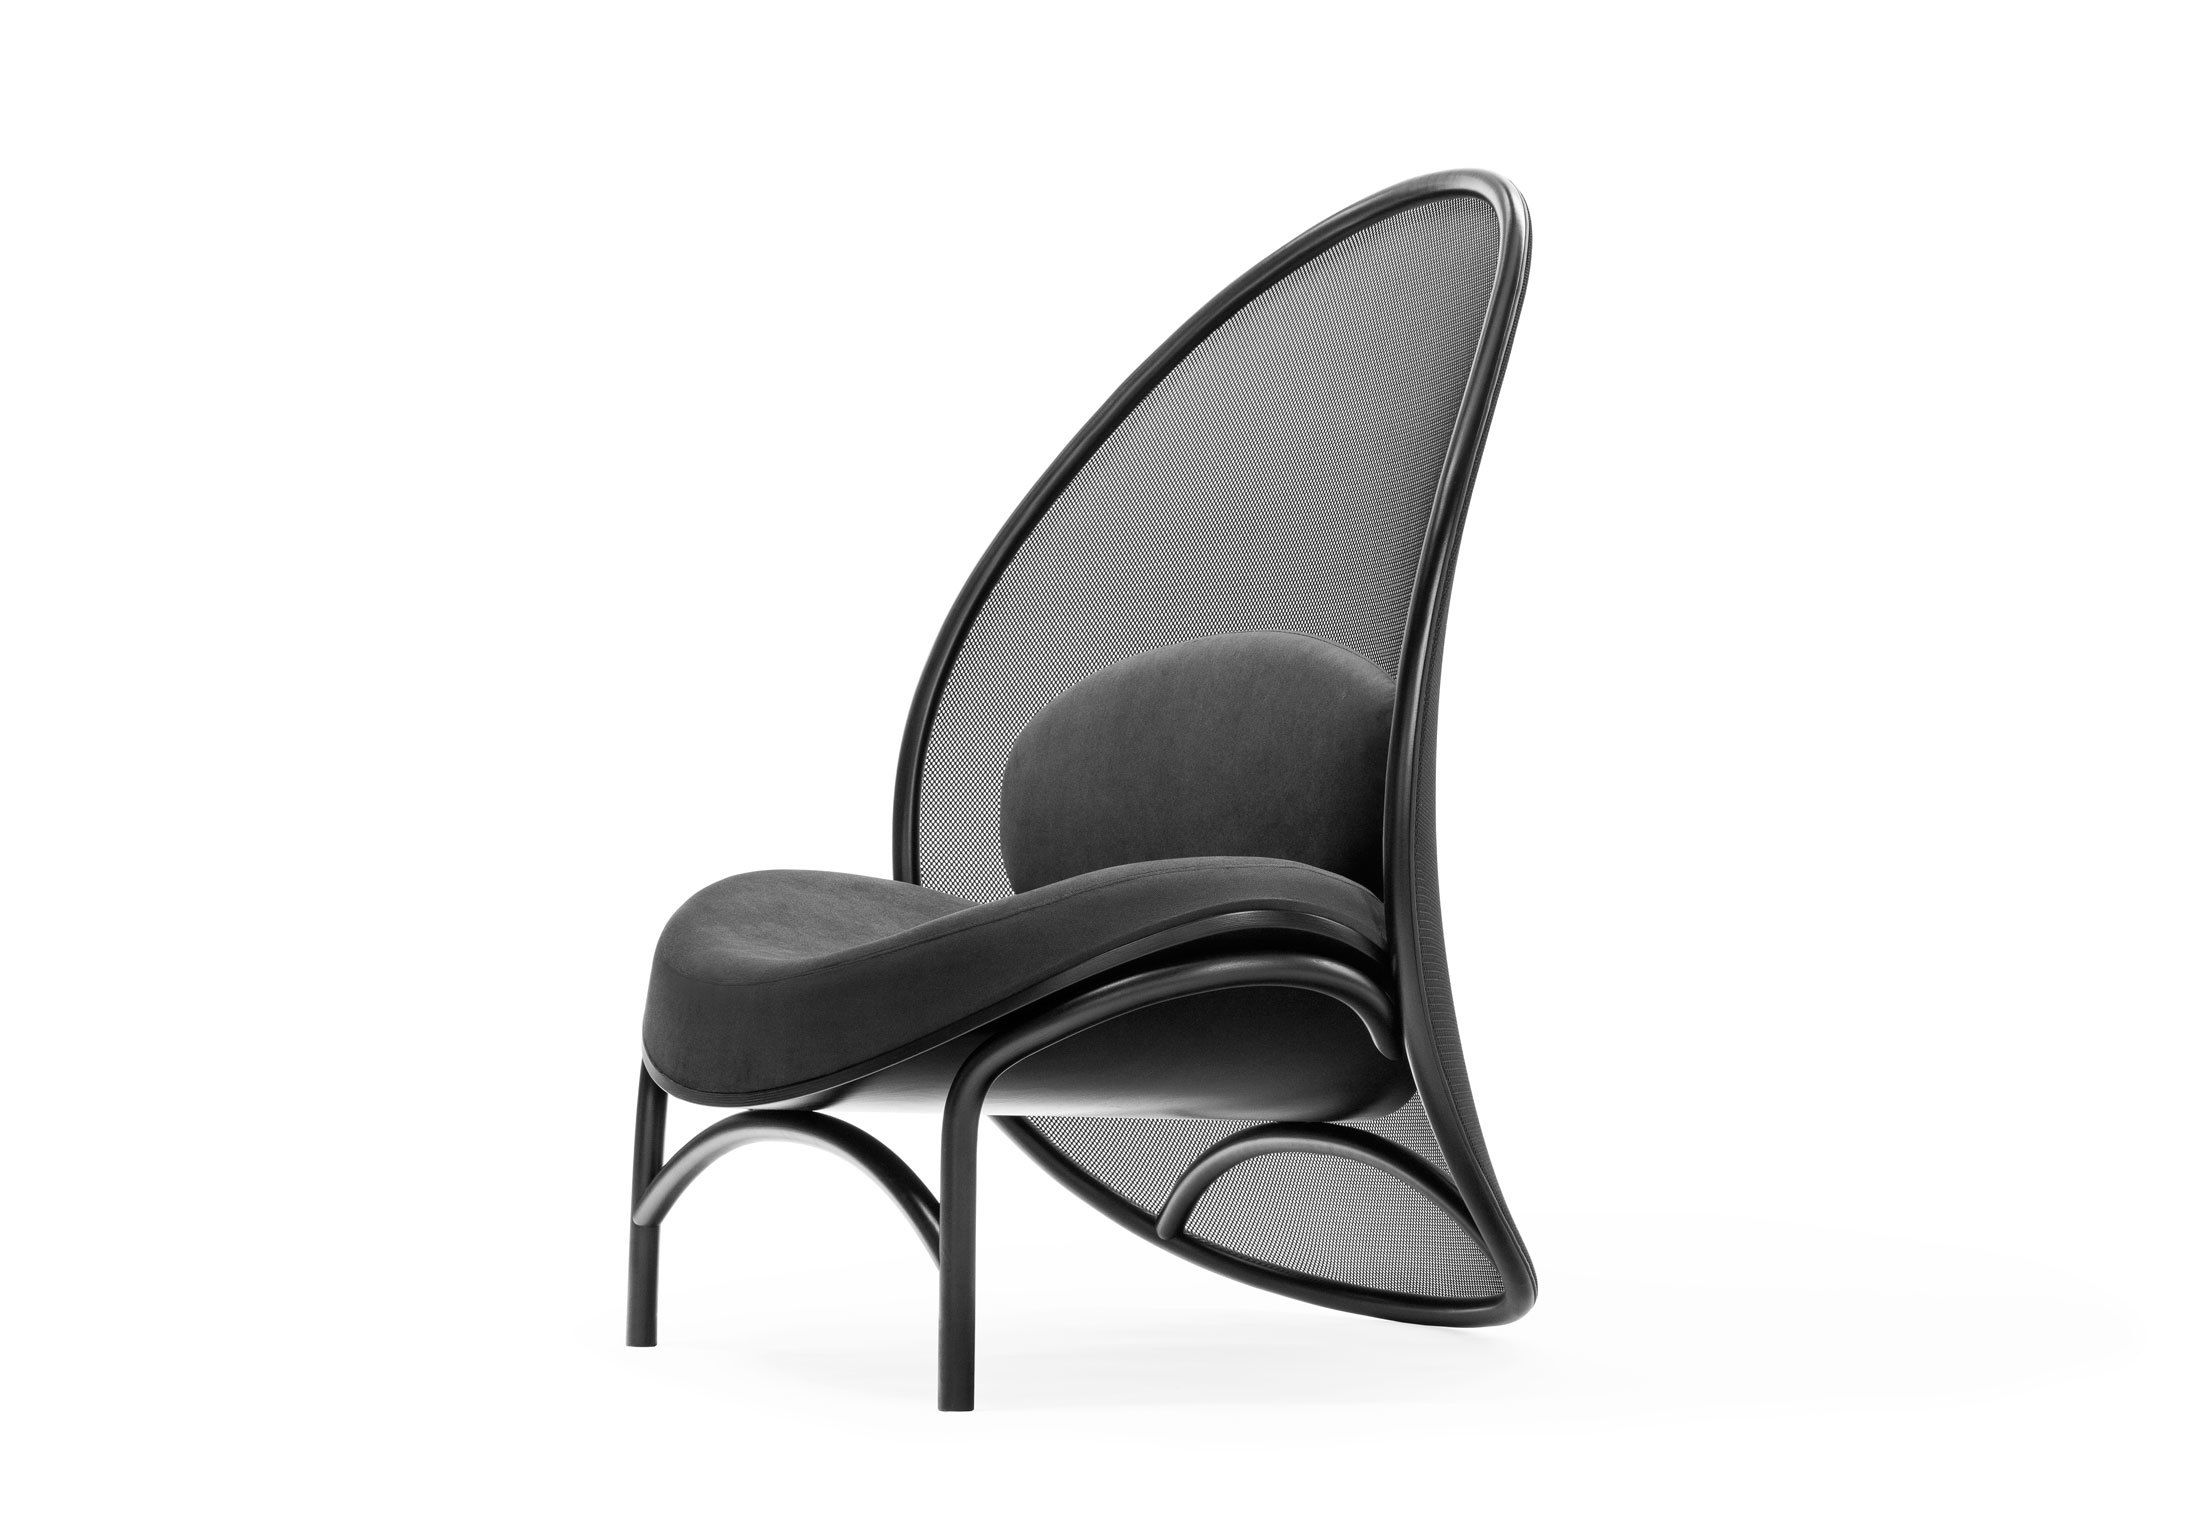 CHIPS Sessel | chairs | Pinterest